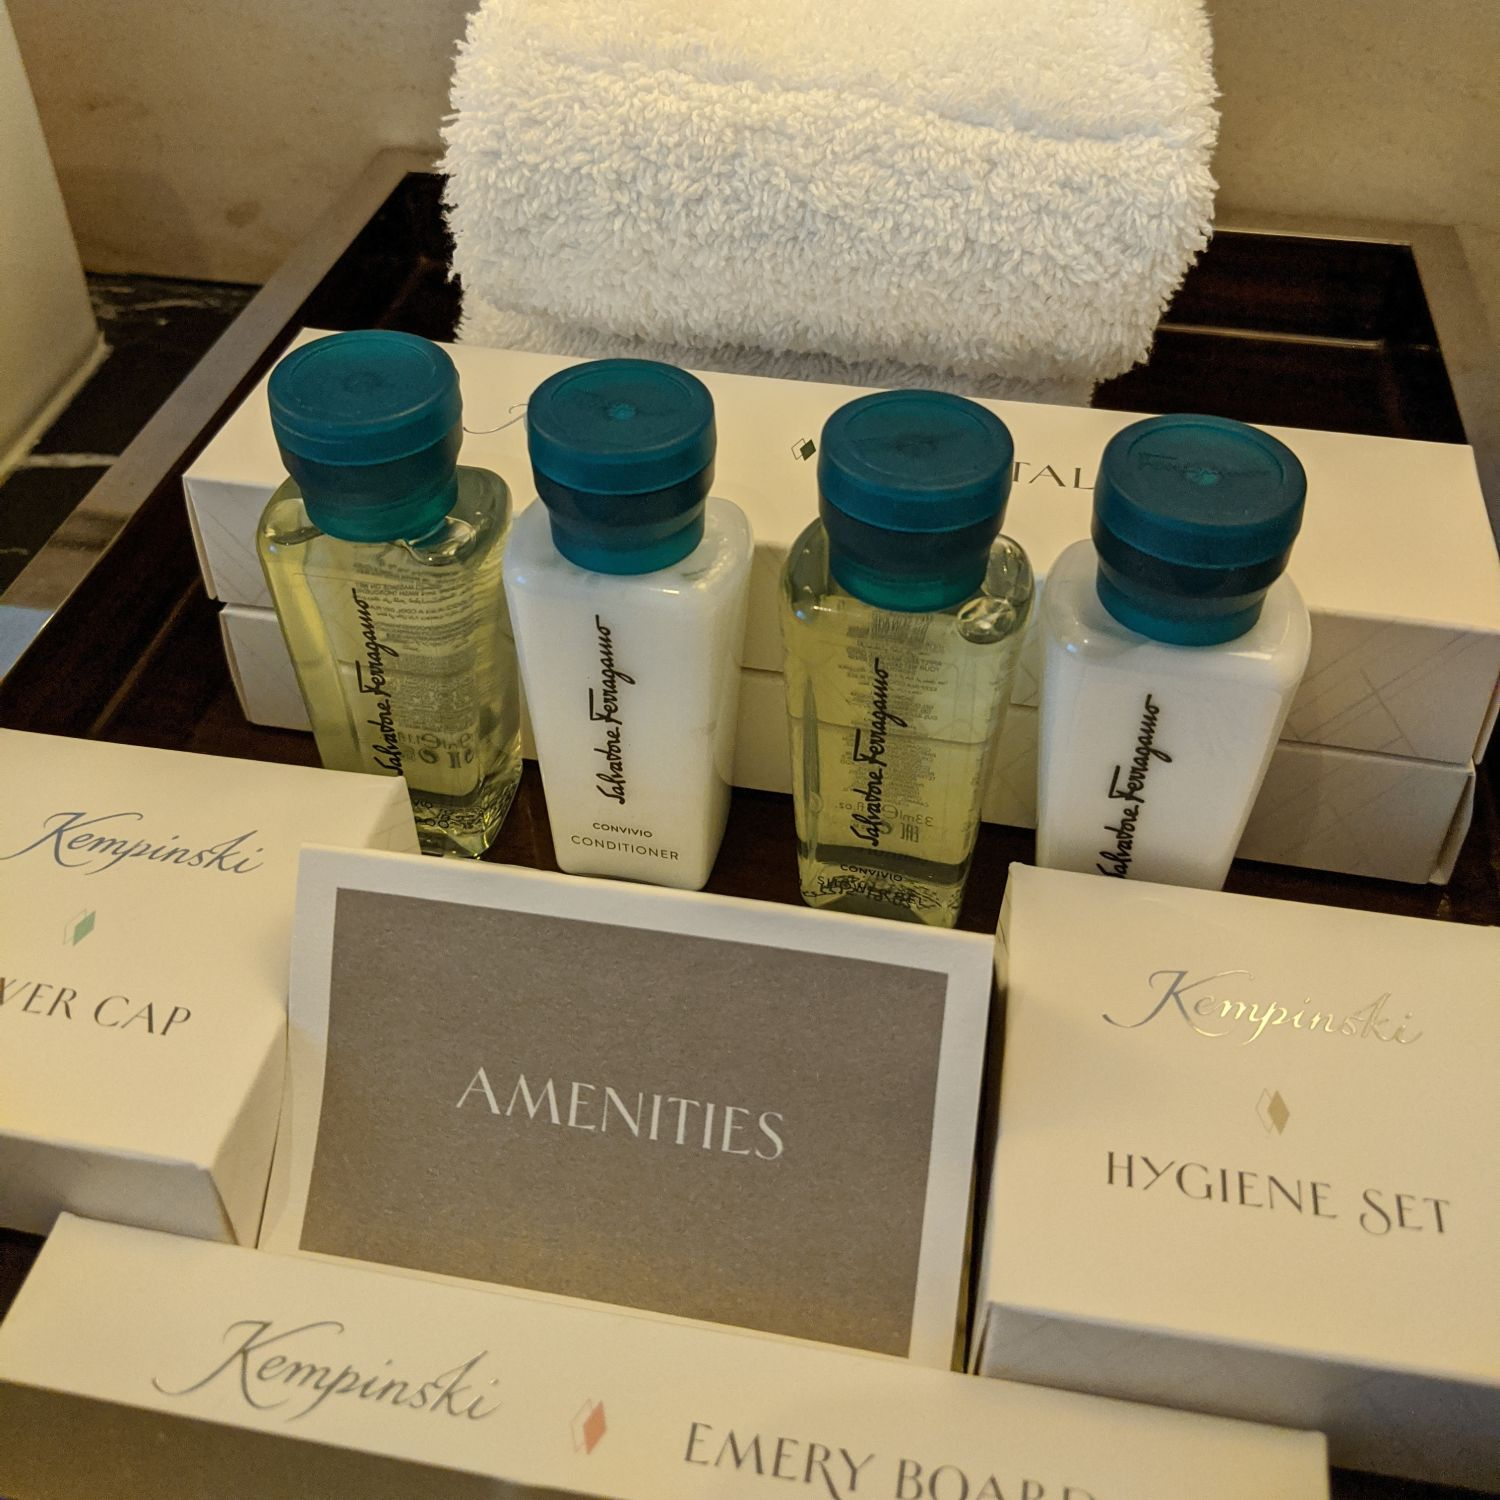 The Capitol Kempinski Hotel Singapore Grand Deluxe Room Bathroom Bathroom Amenities